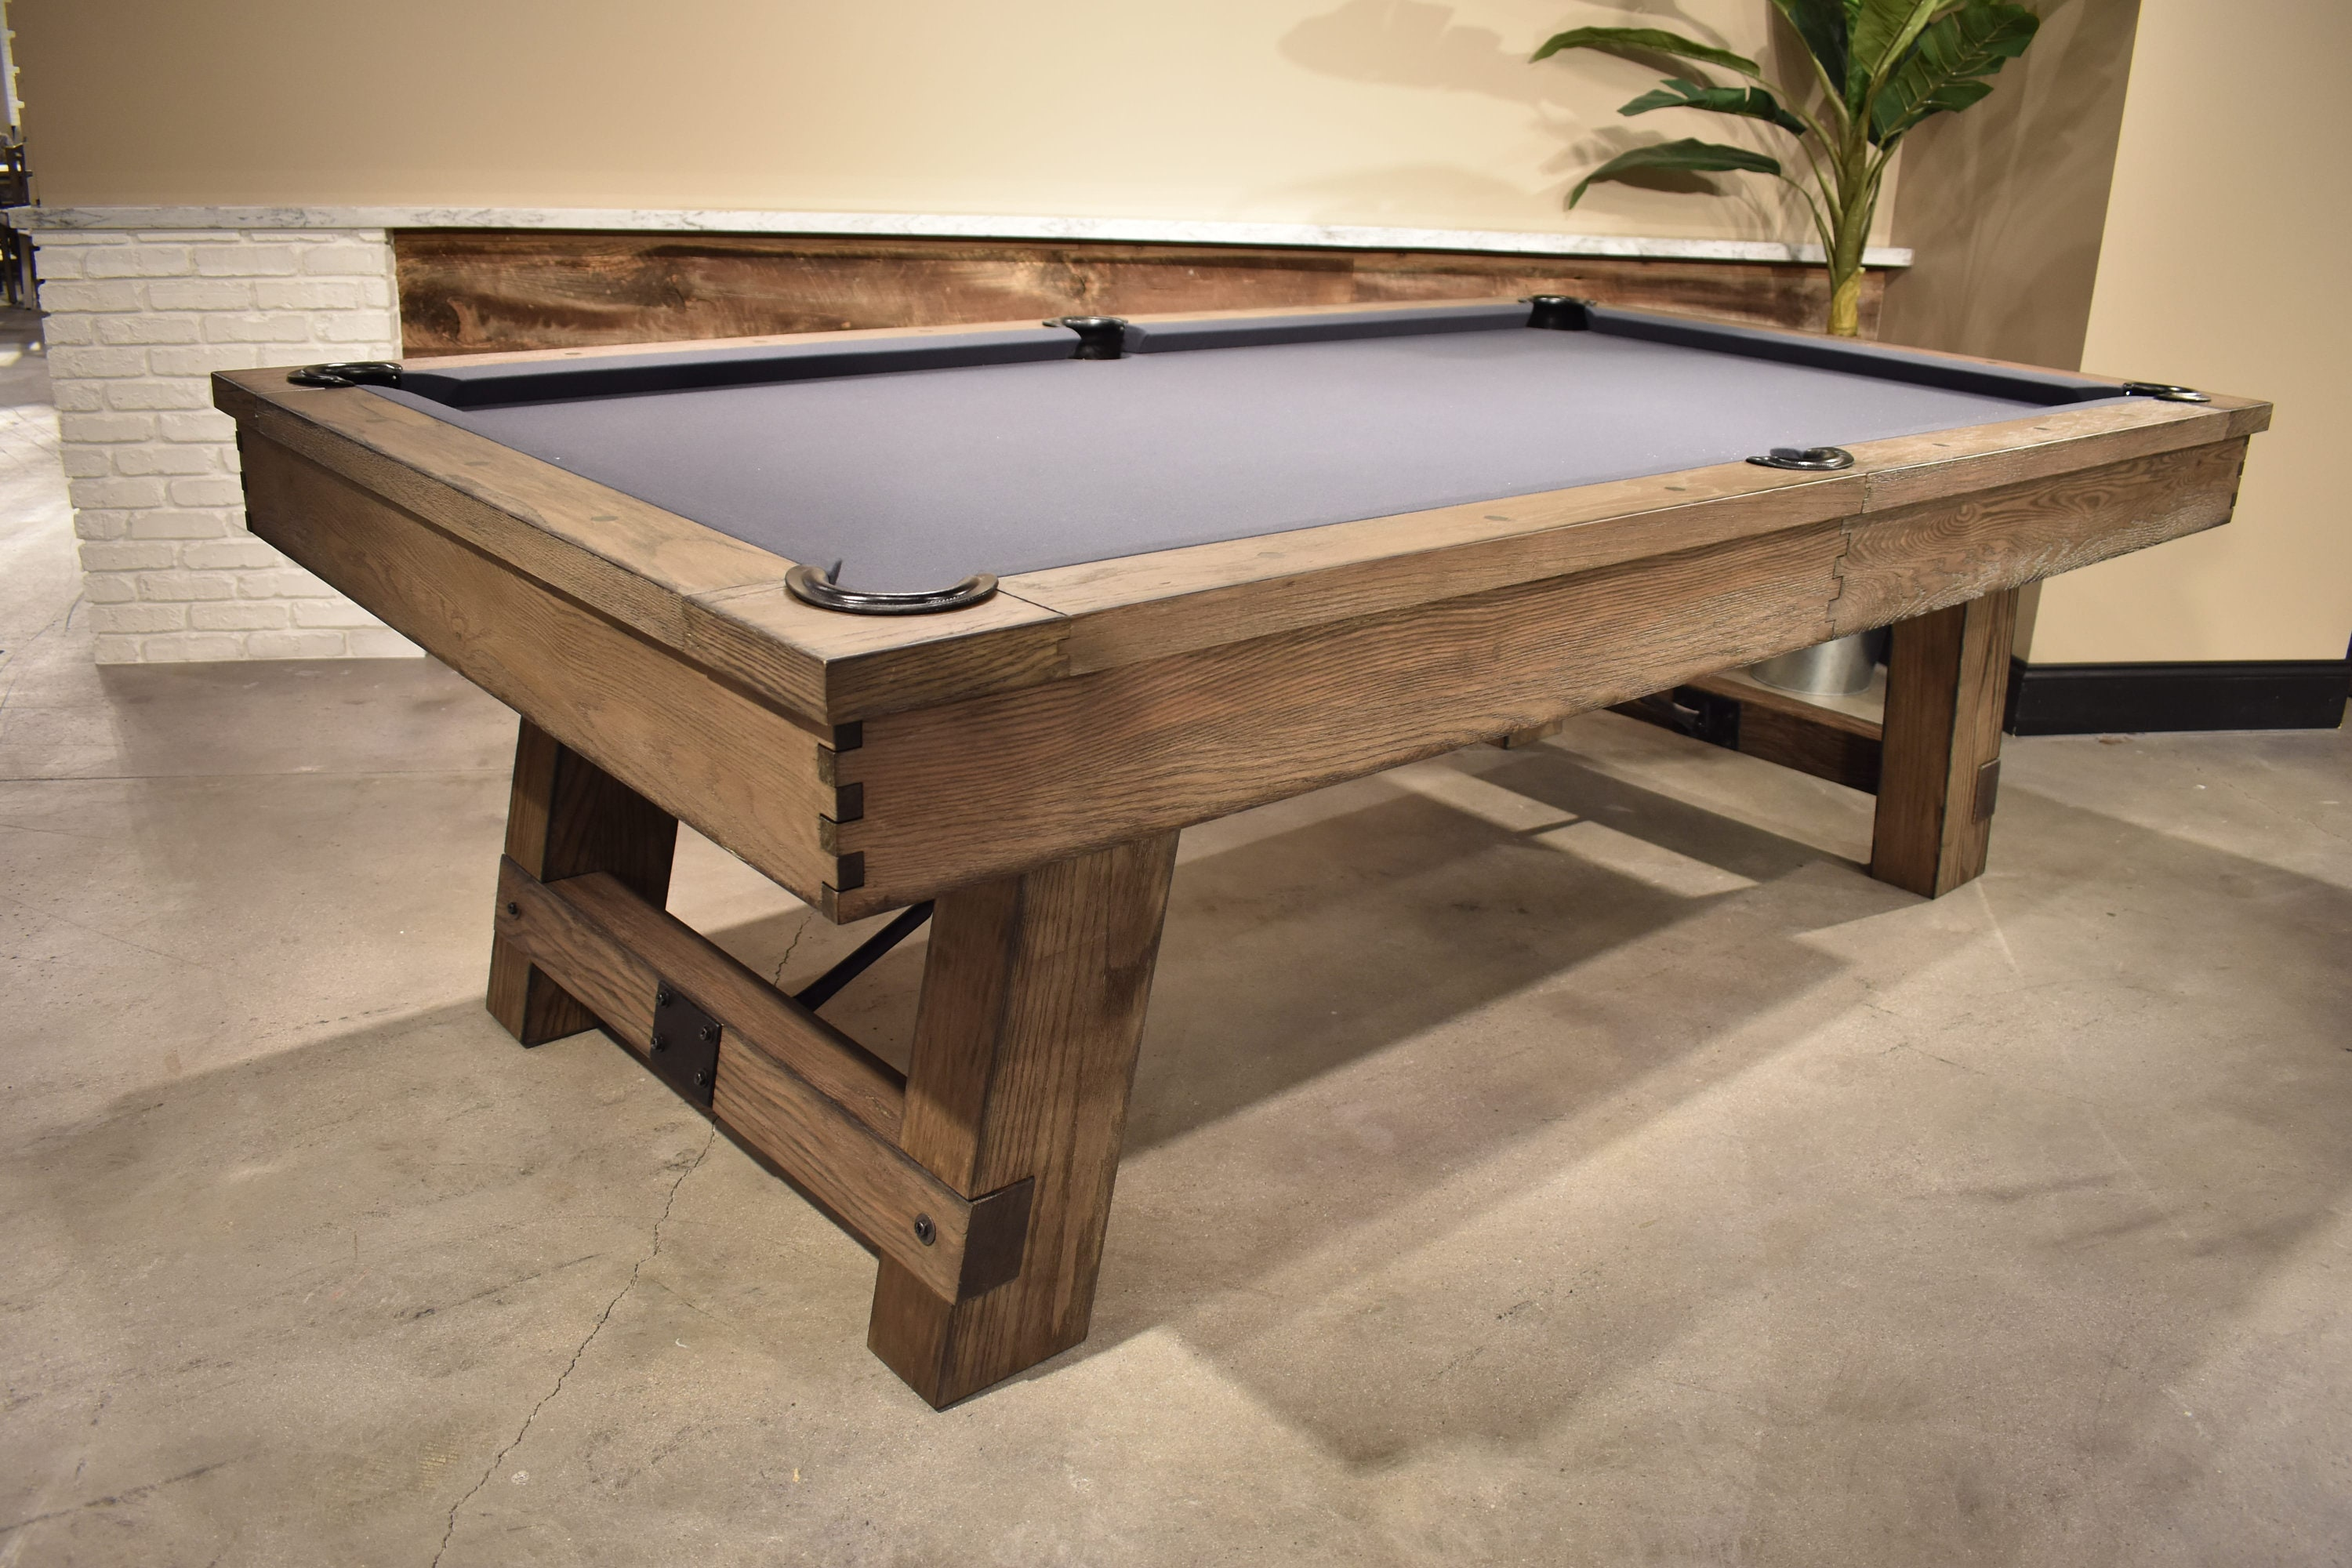 Reclaimed Pool Table Oak Wood Design Game Tables Modern